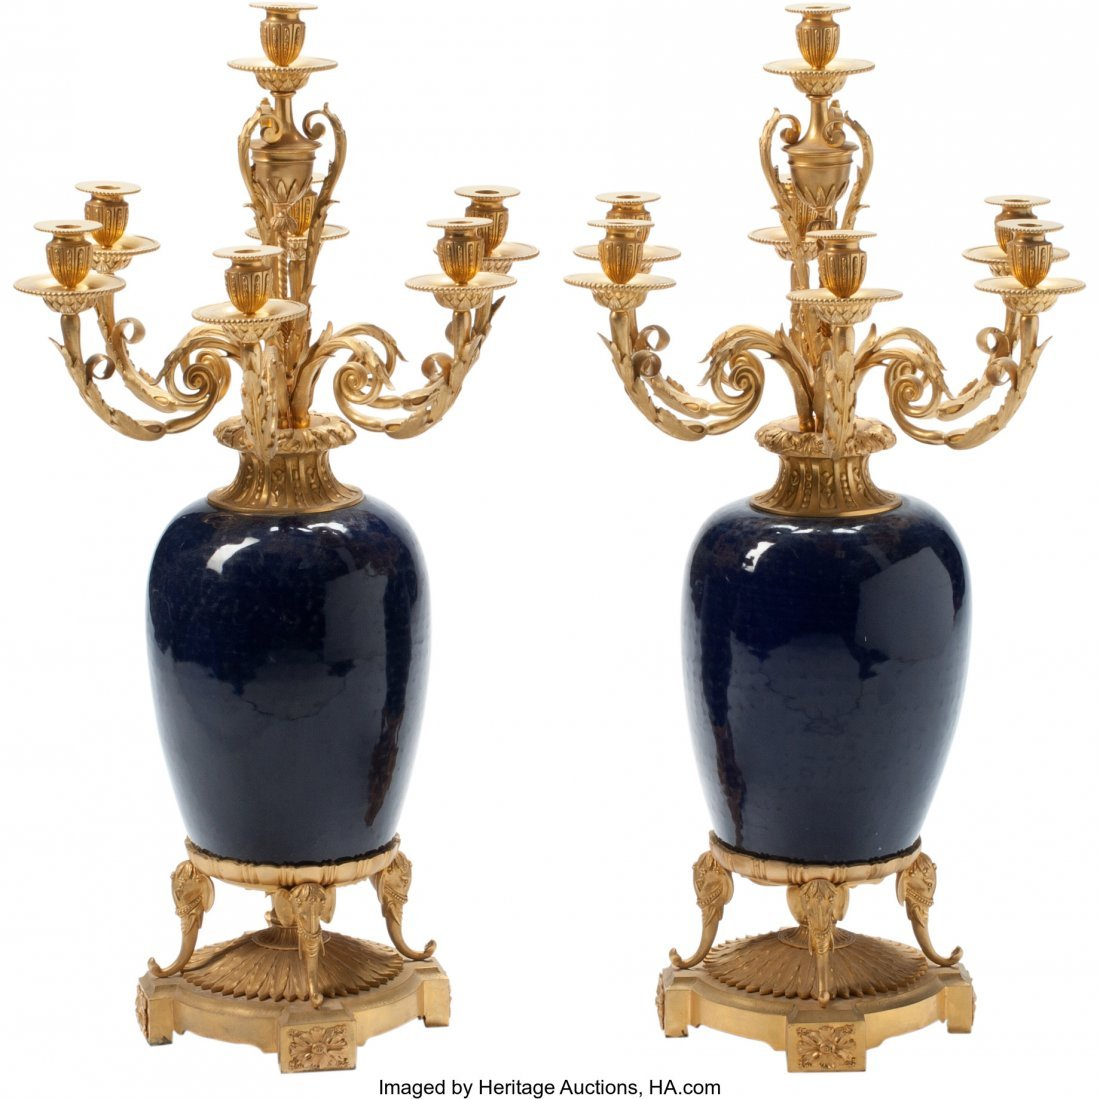 63231: A Pair of French Gilt Bronze and Porcelain Seven